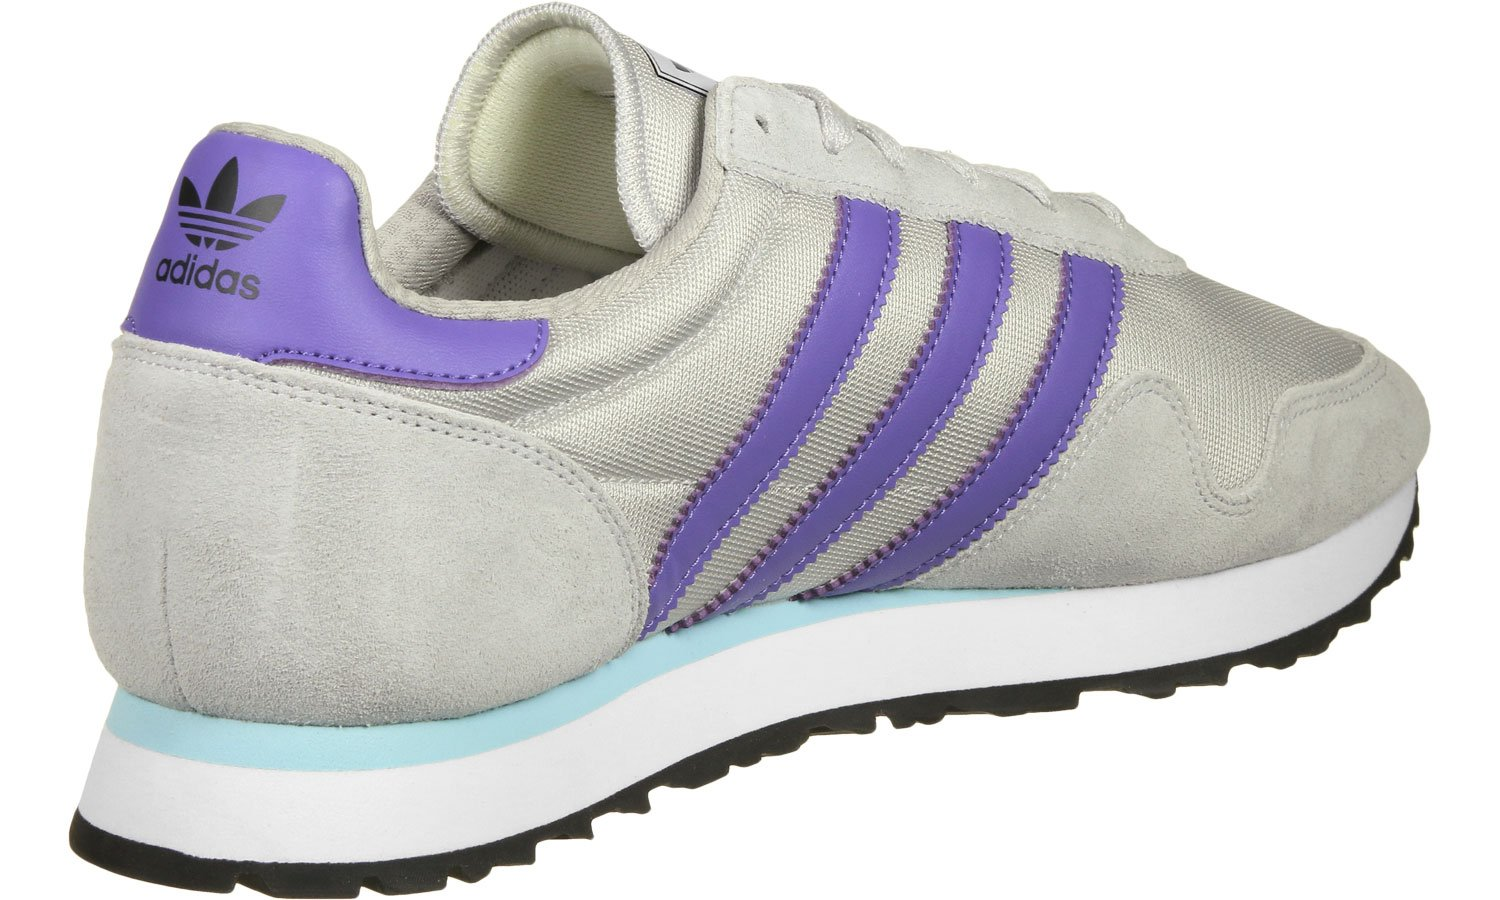 adidas Haven Scarpa grey/purple